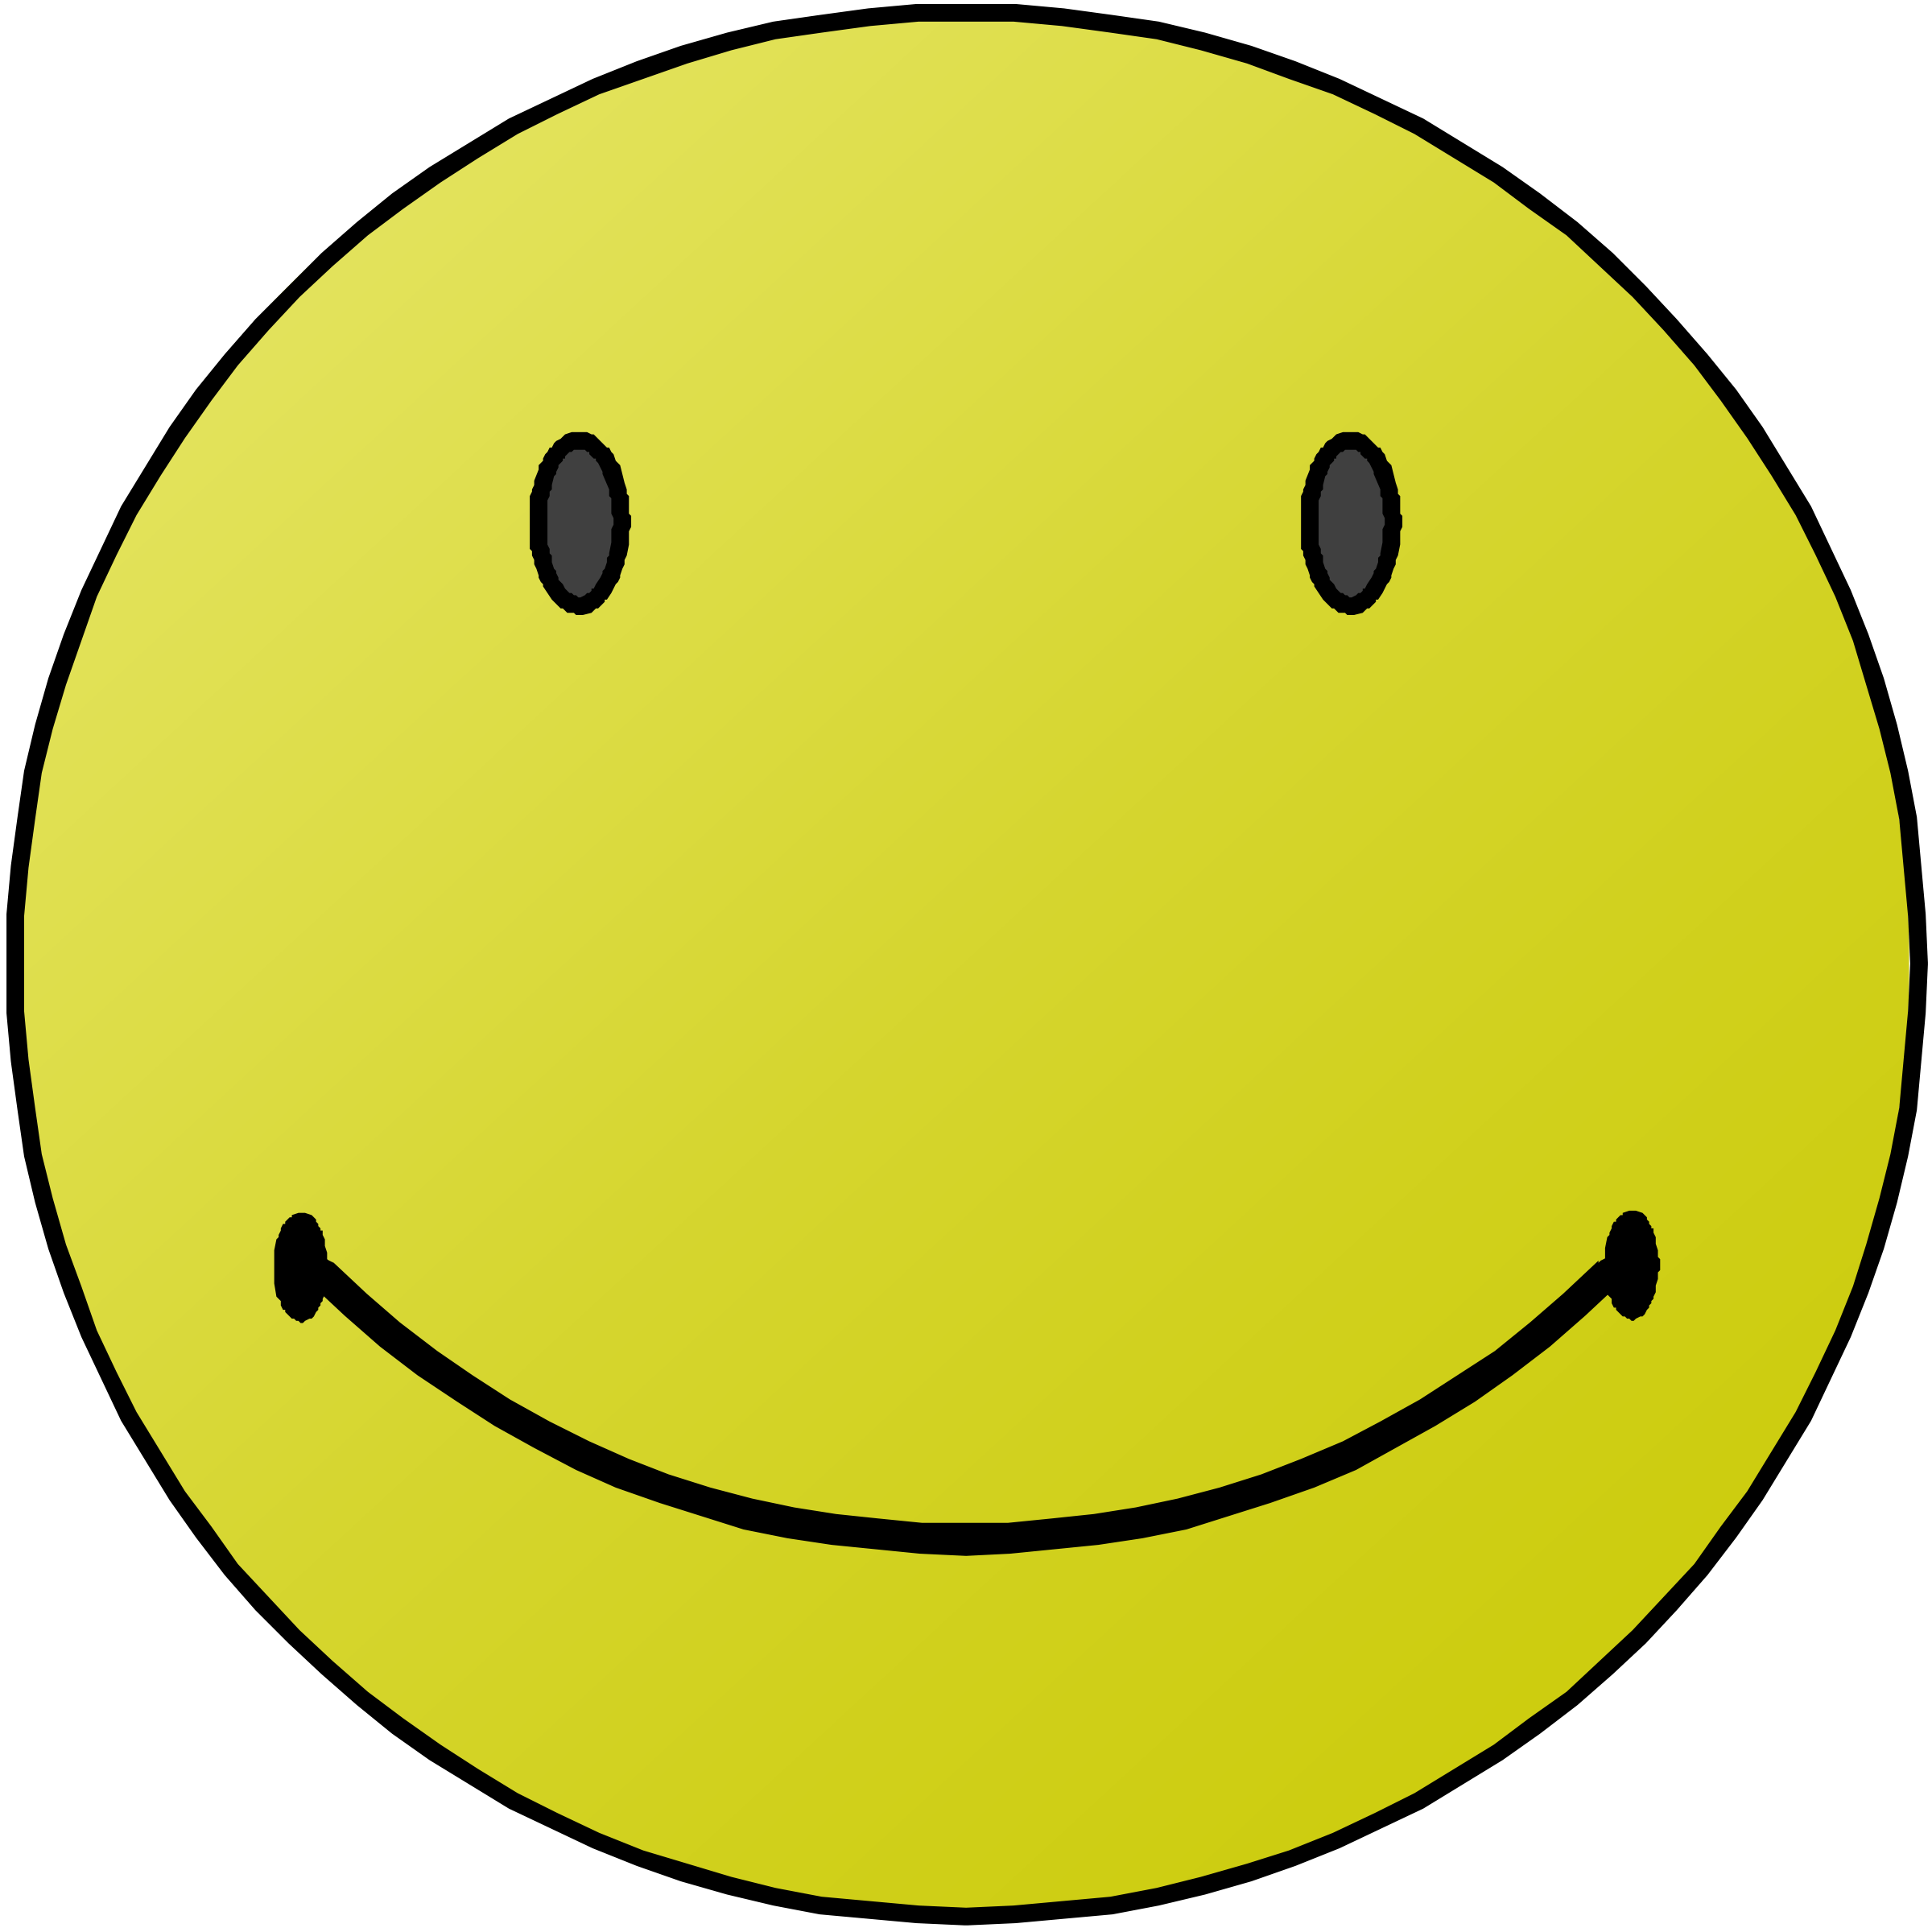 svg black and white library Yes clipart smiling face. At getdrawings com free